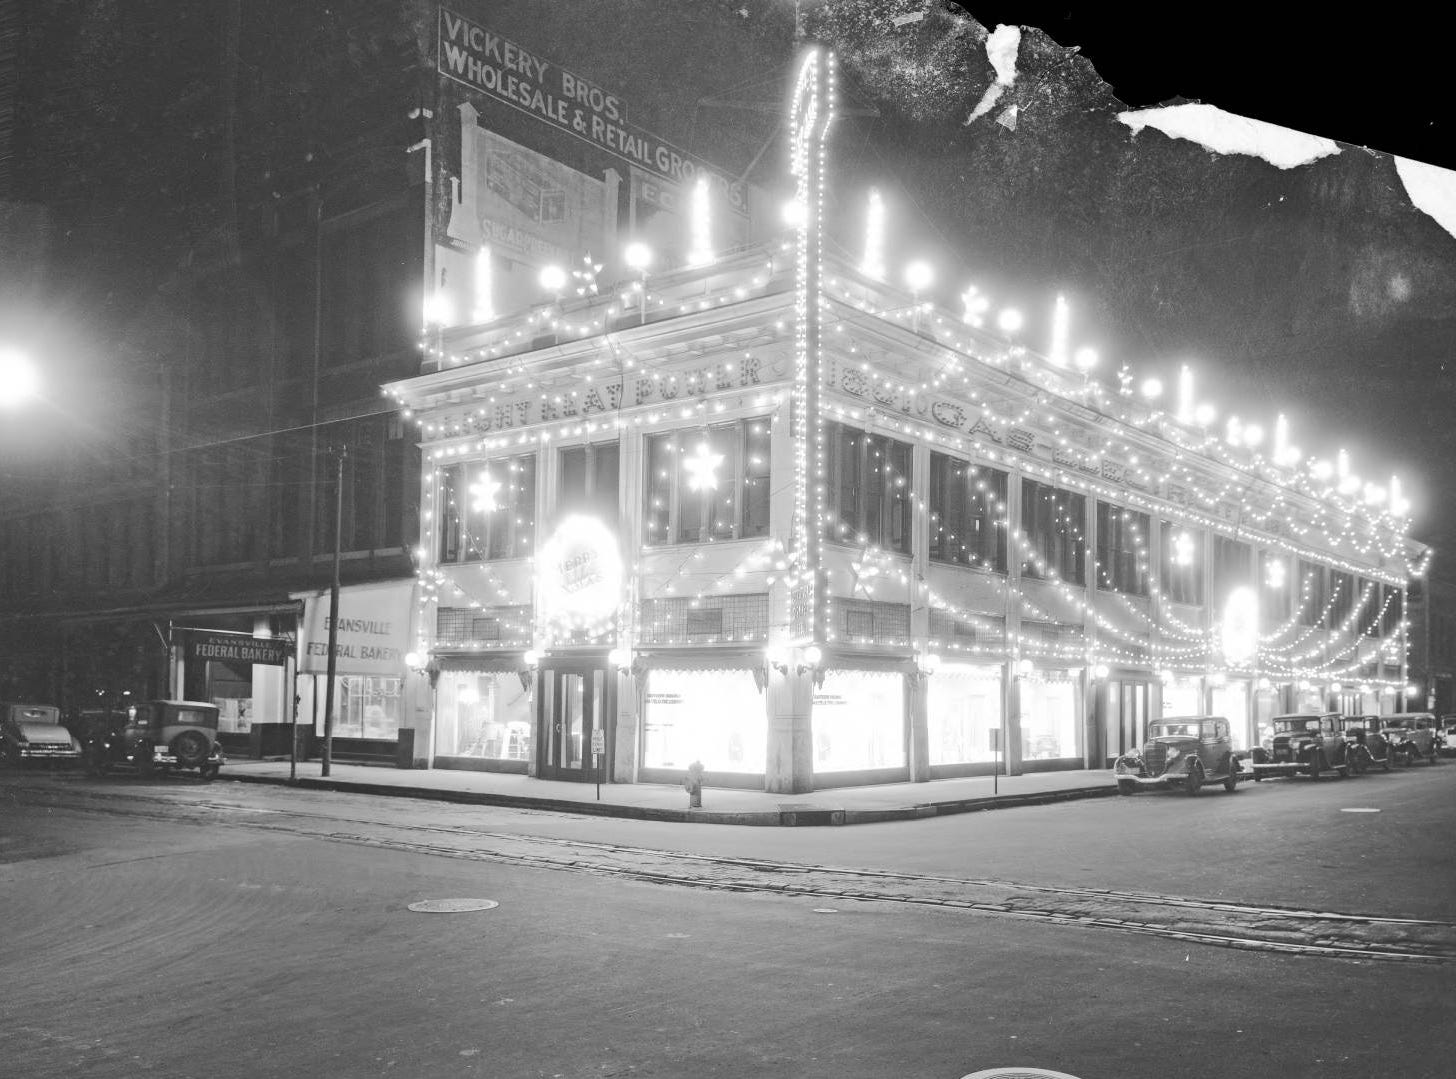 SIGECO office lit up for Christmas Also known as the Skora building at 2nd and Sycamore, across from the post office in 1934.